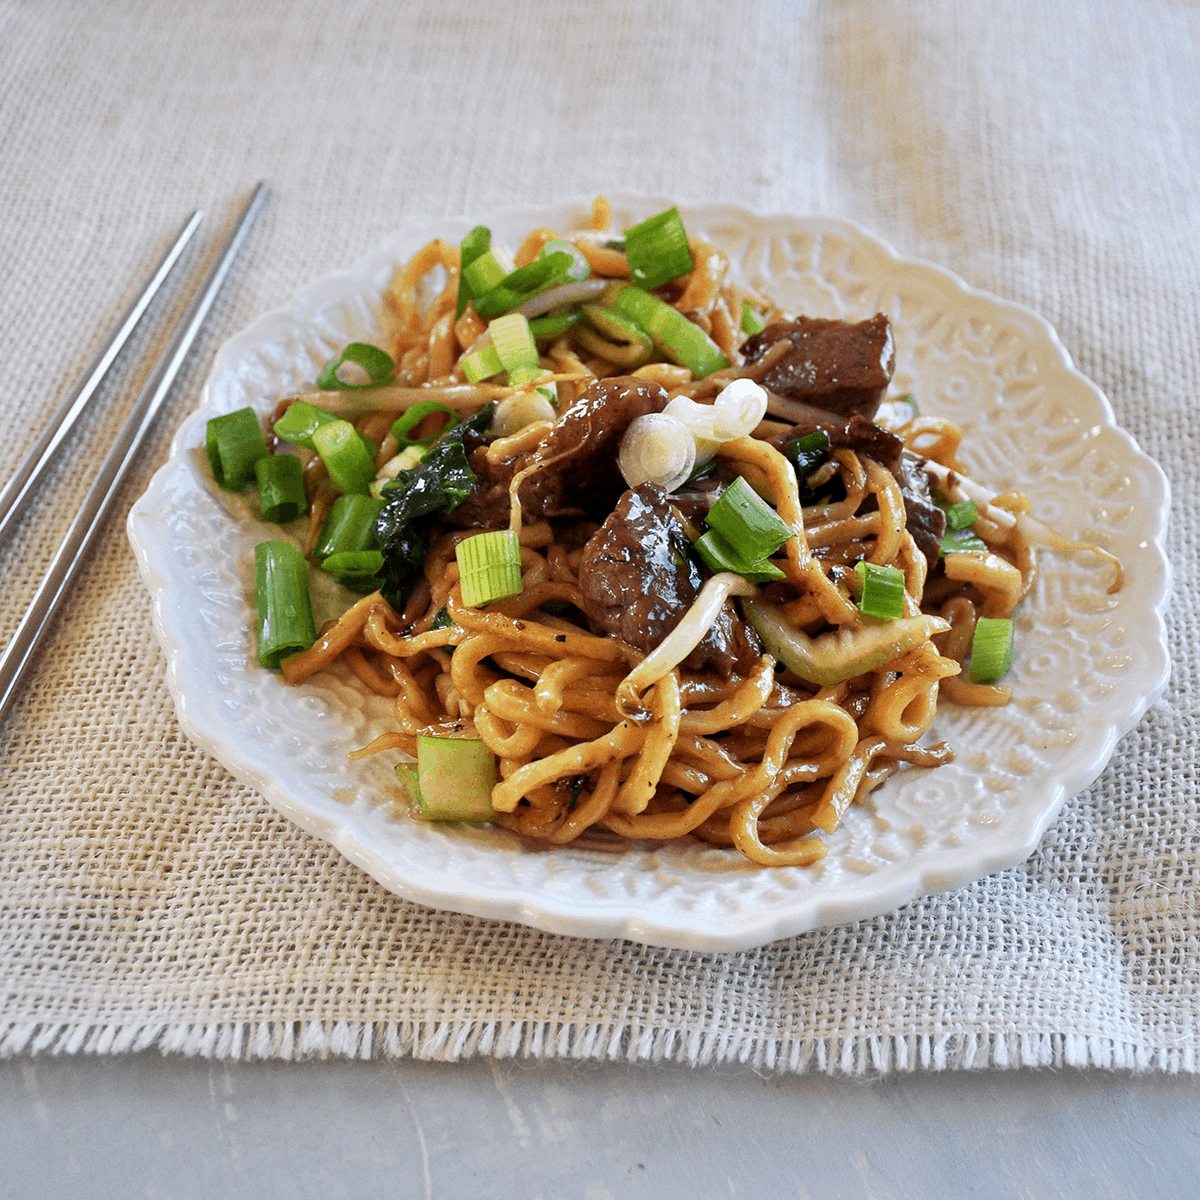 Beef Chow Mein from the side with chop sticks.